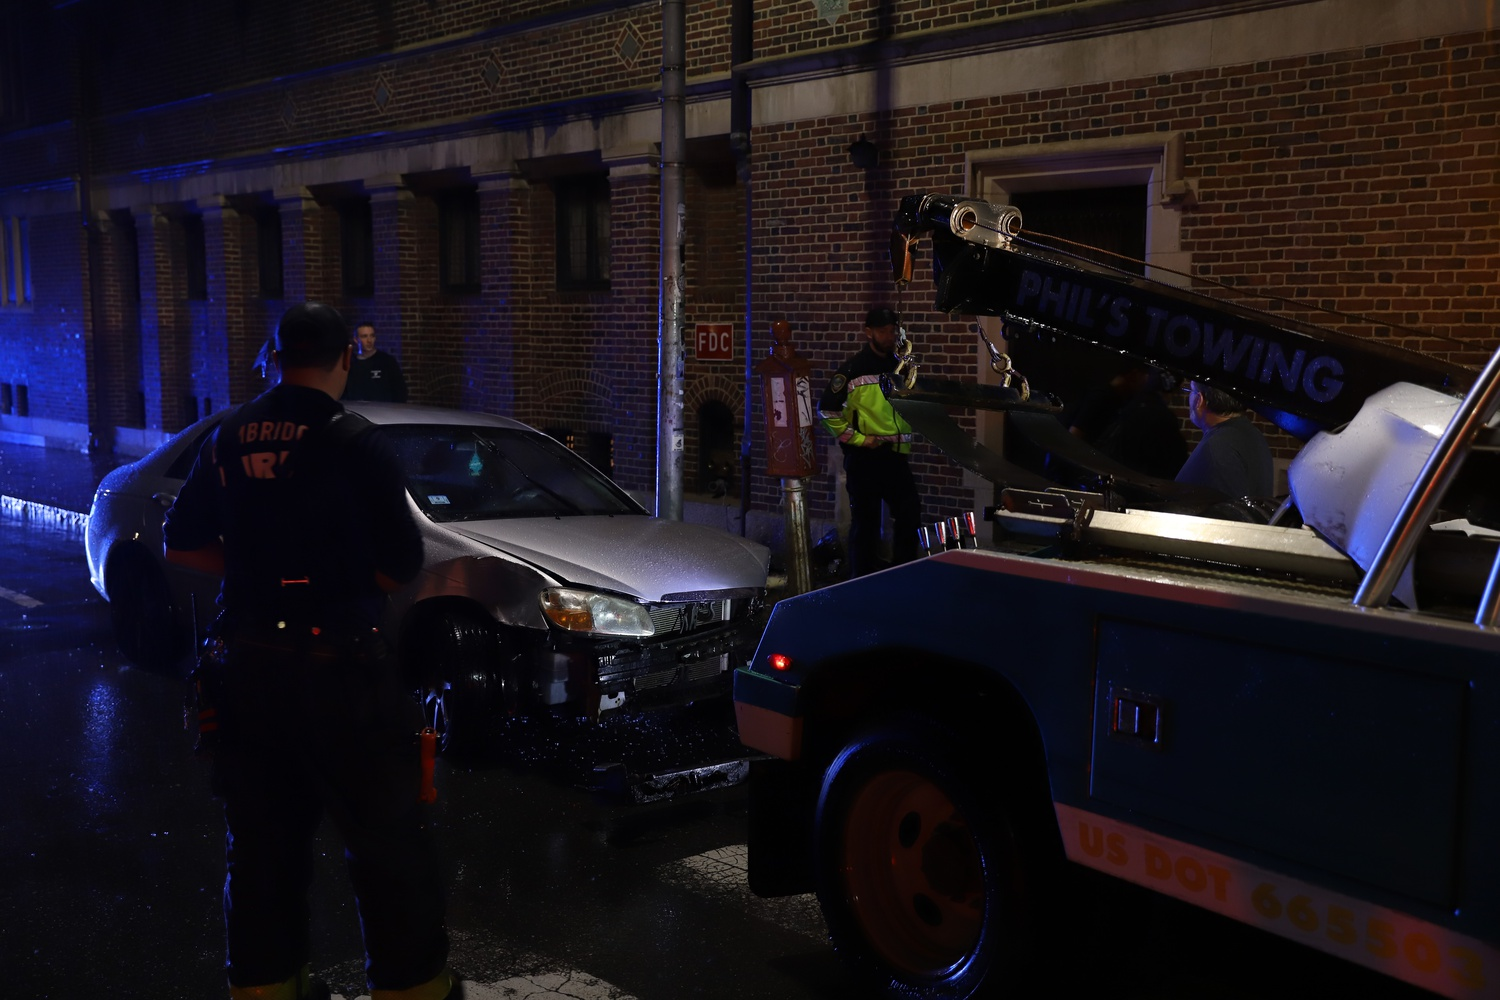 A tow truck removed the gray sedan after it crashed into the Harvard Lampoon building.